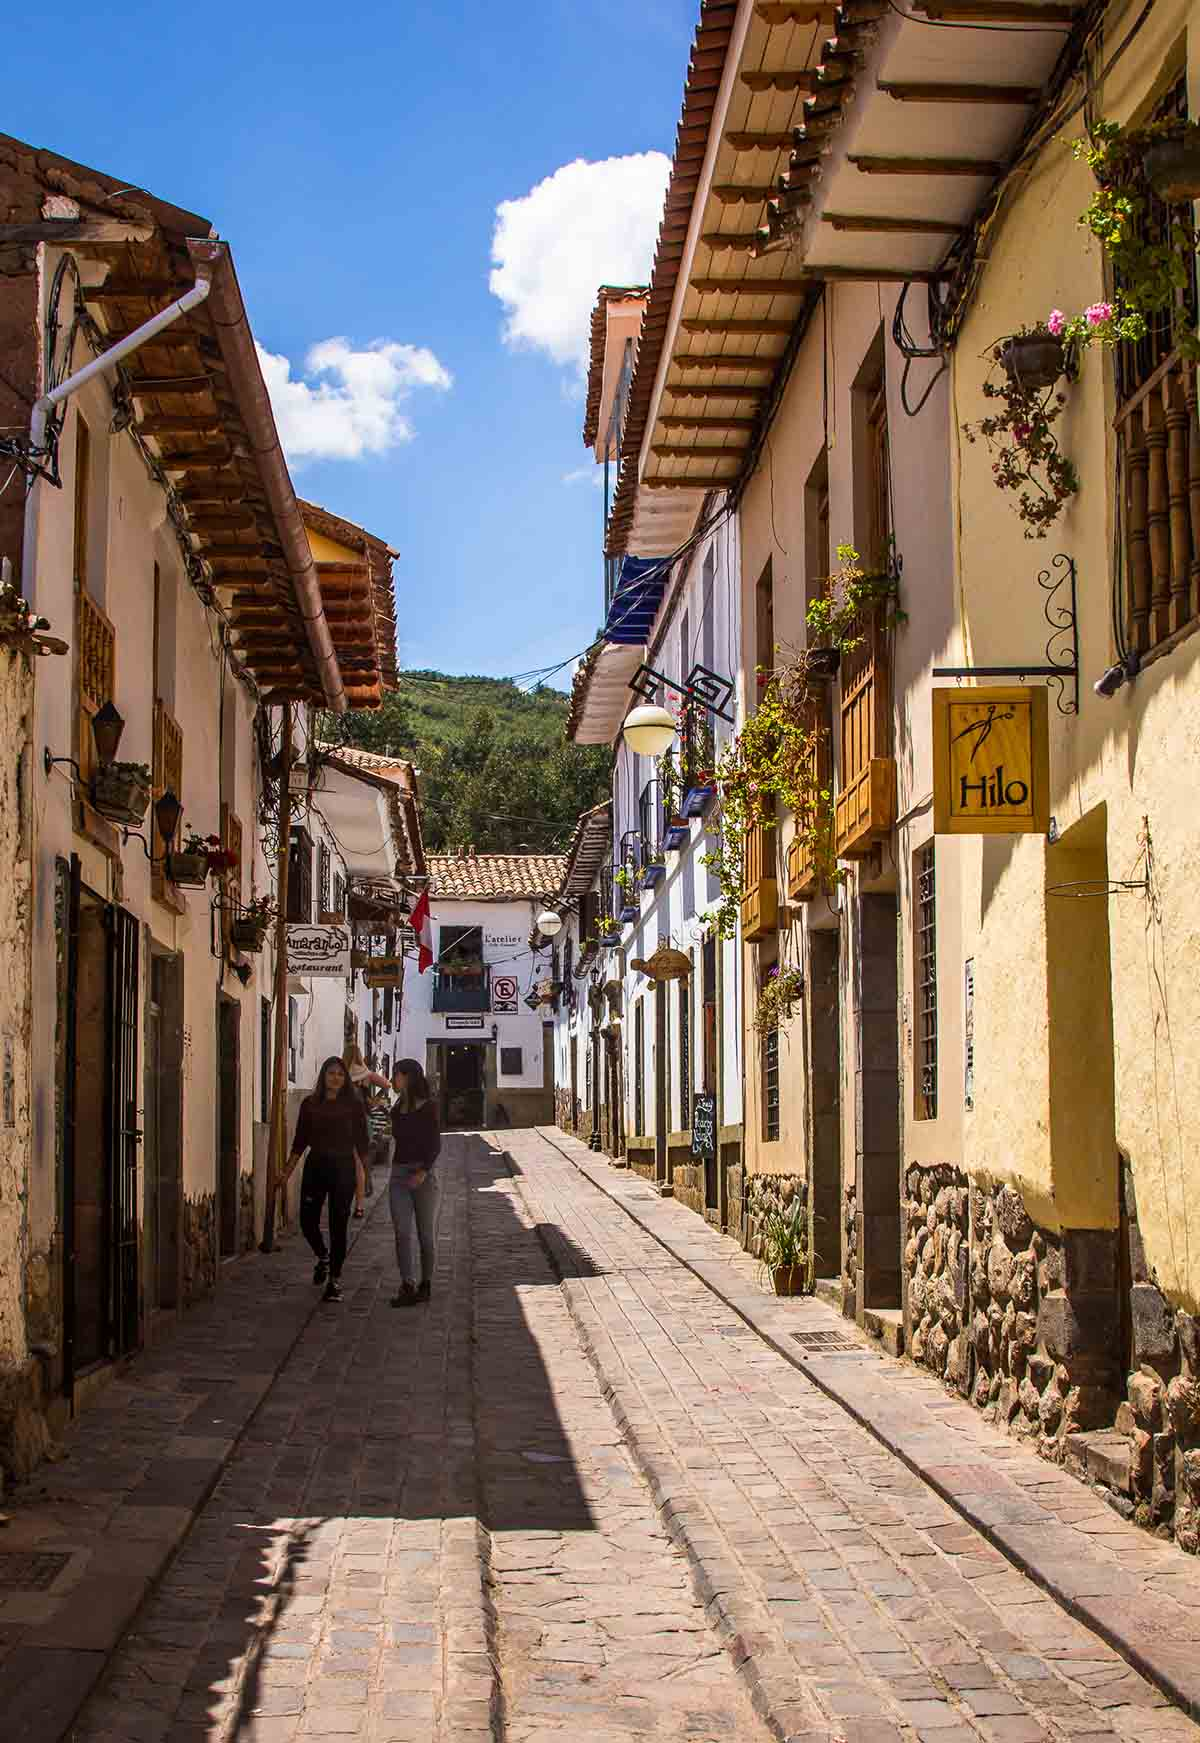 A brightly decorated street in the oldest neighborhood in Cusco, San Blas.